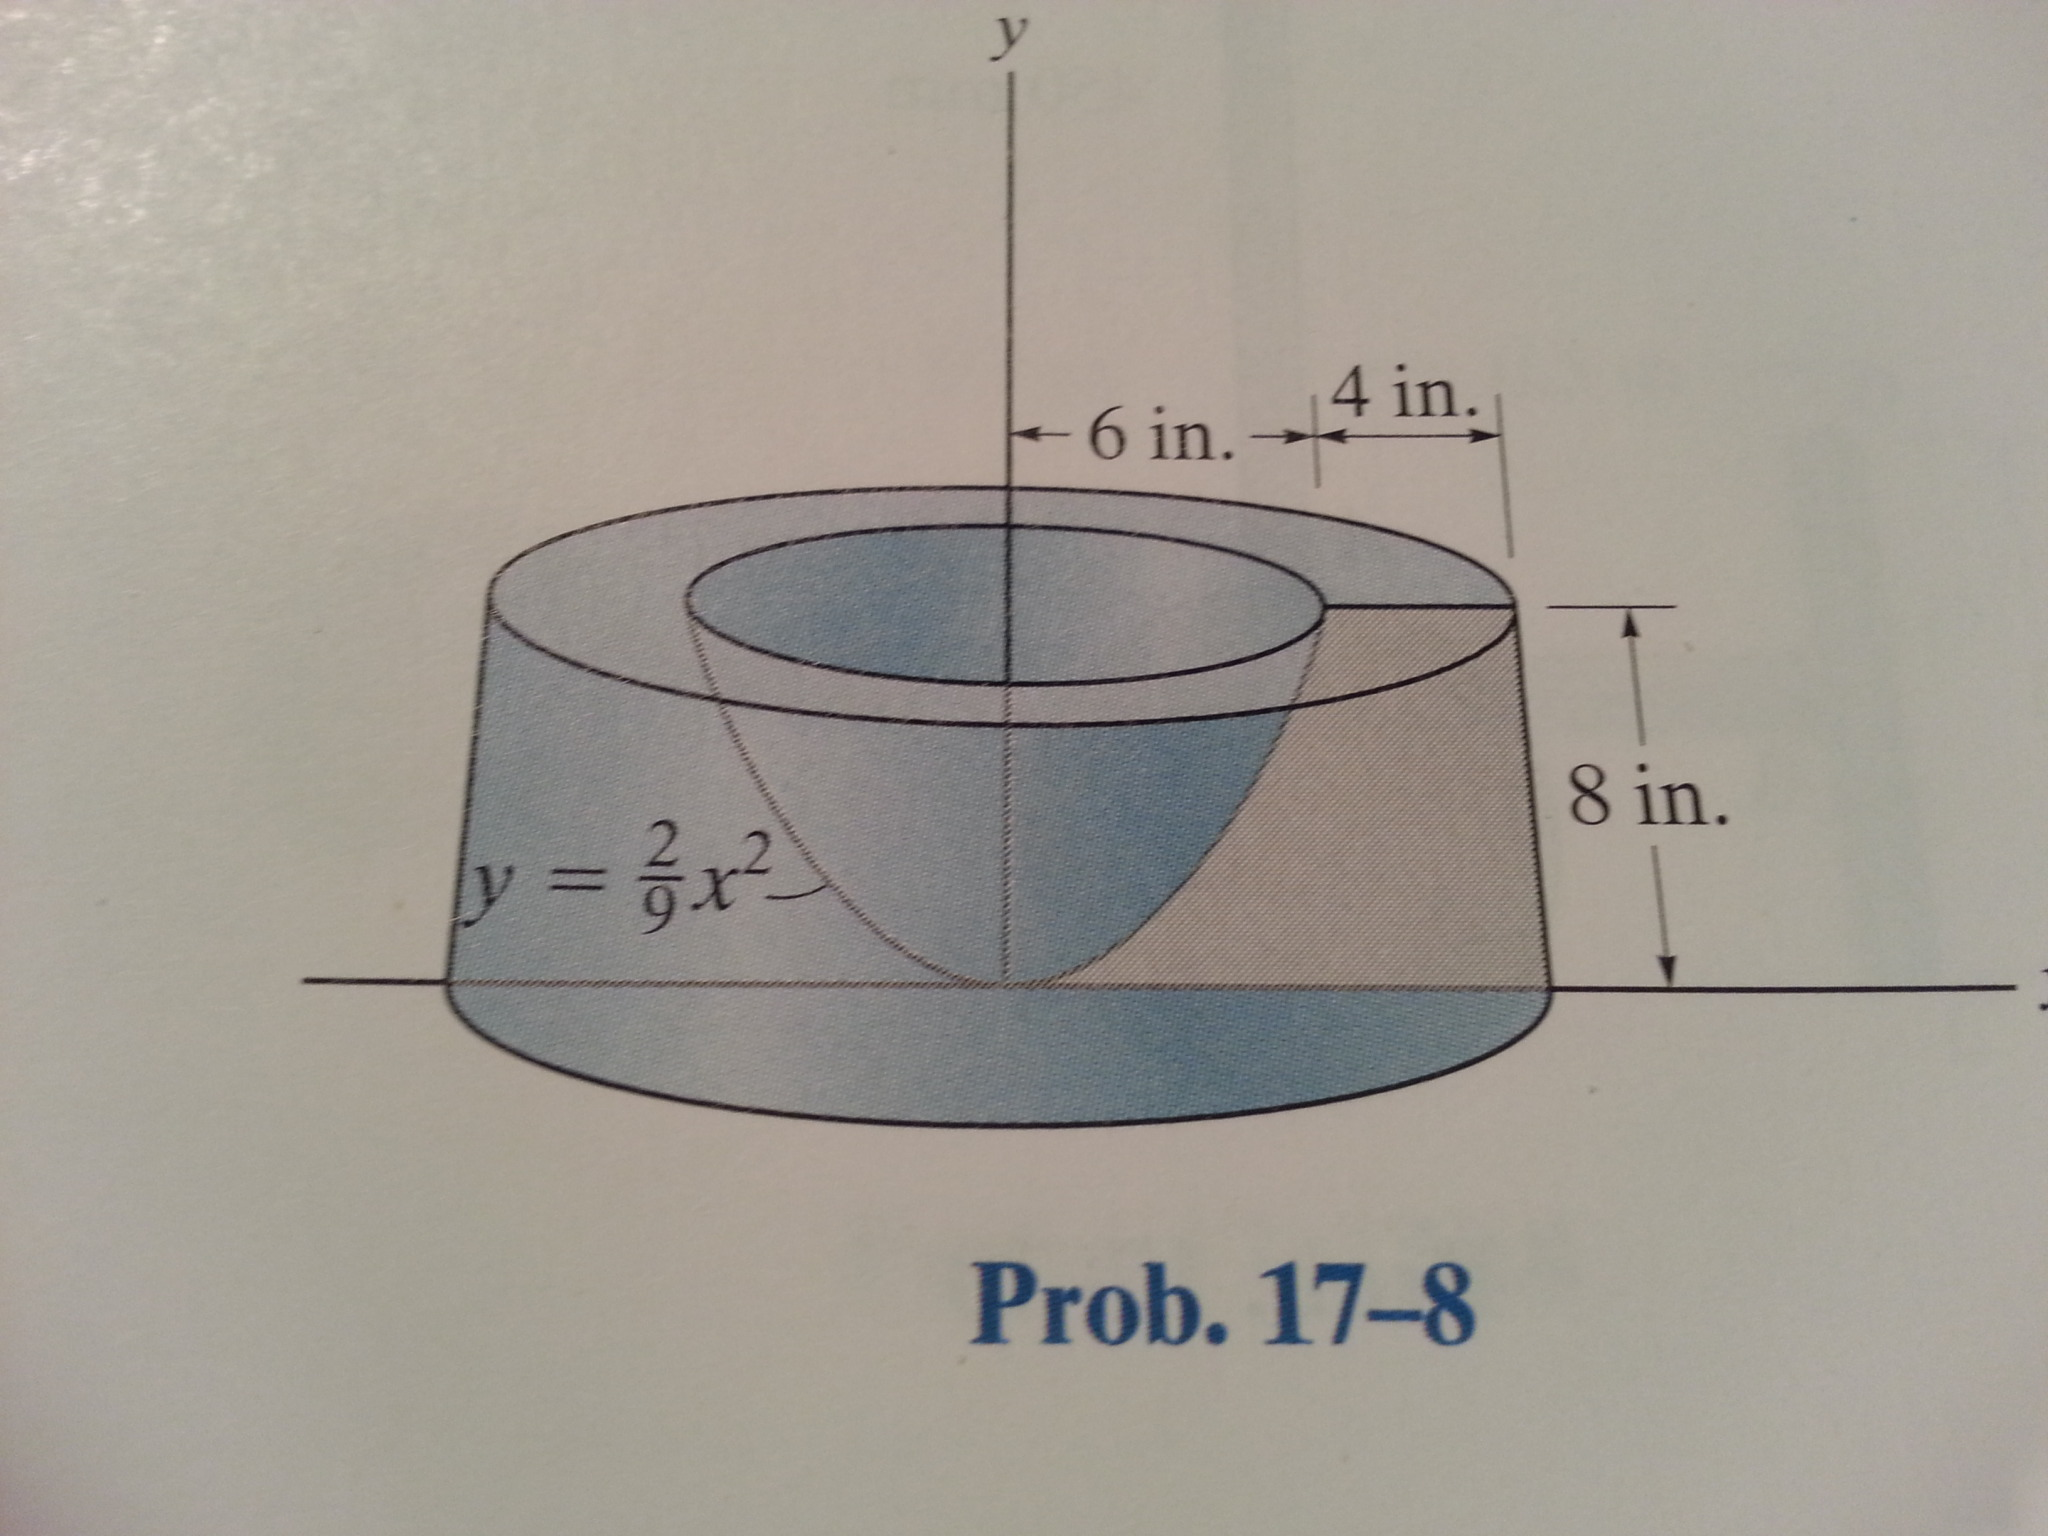 Image for The concrete shape is formed by rotating the shaded area about the y axis. Determine the moment of inertia Iy.